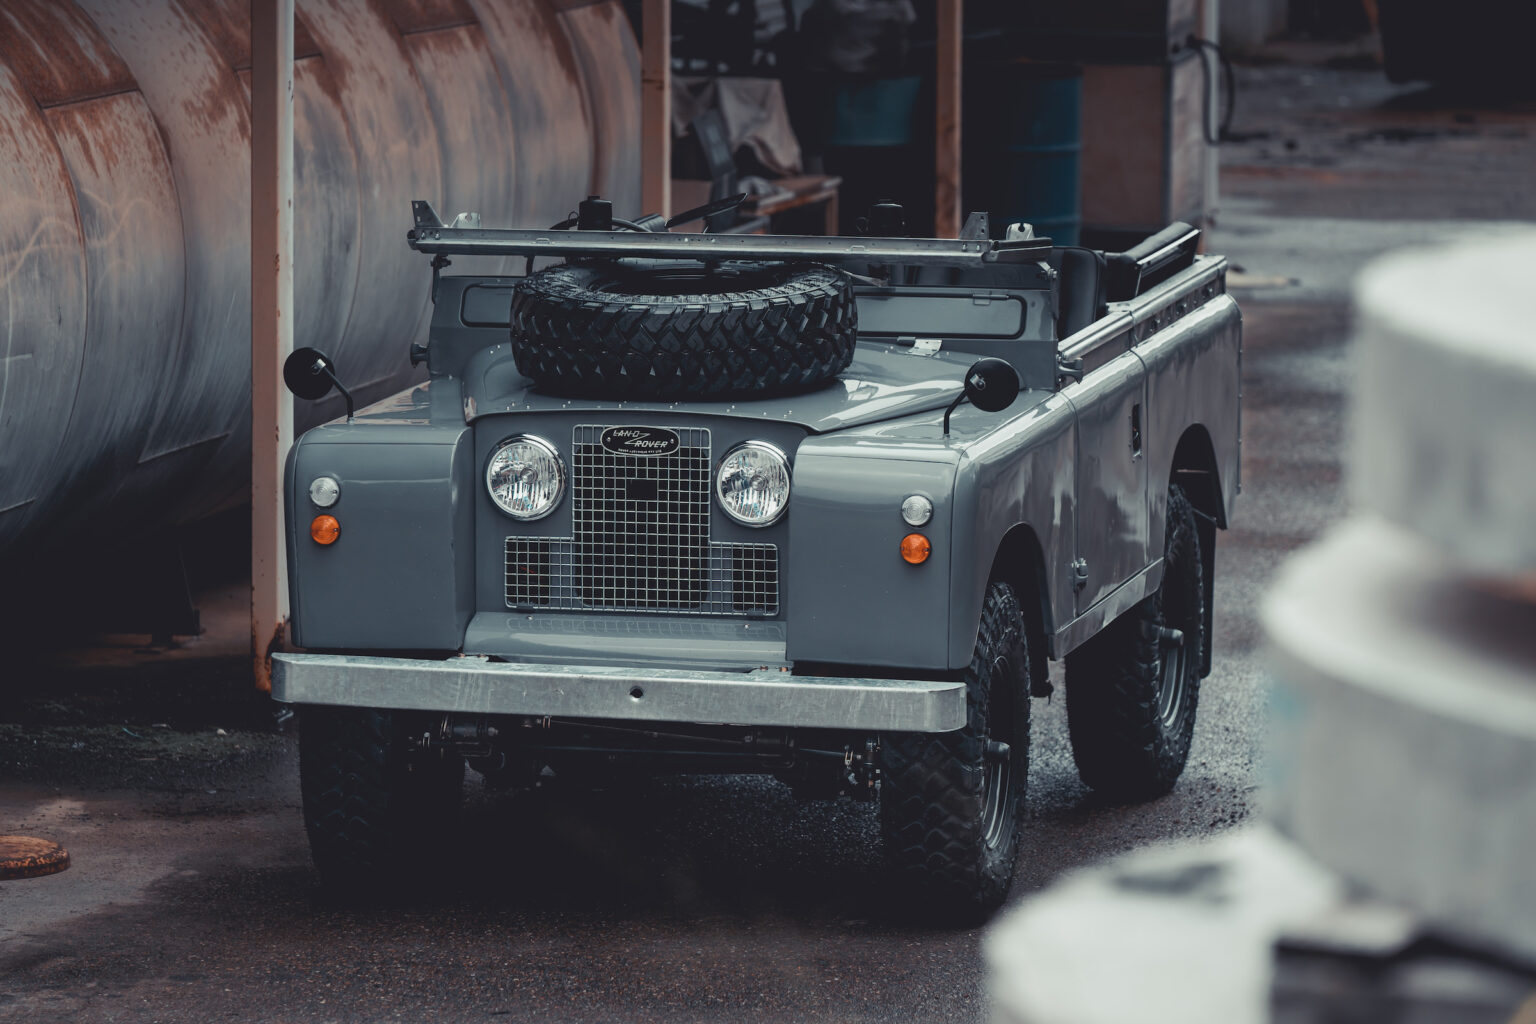 Surf 'n' turf Land Rover is as cool as they come